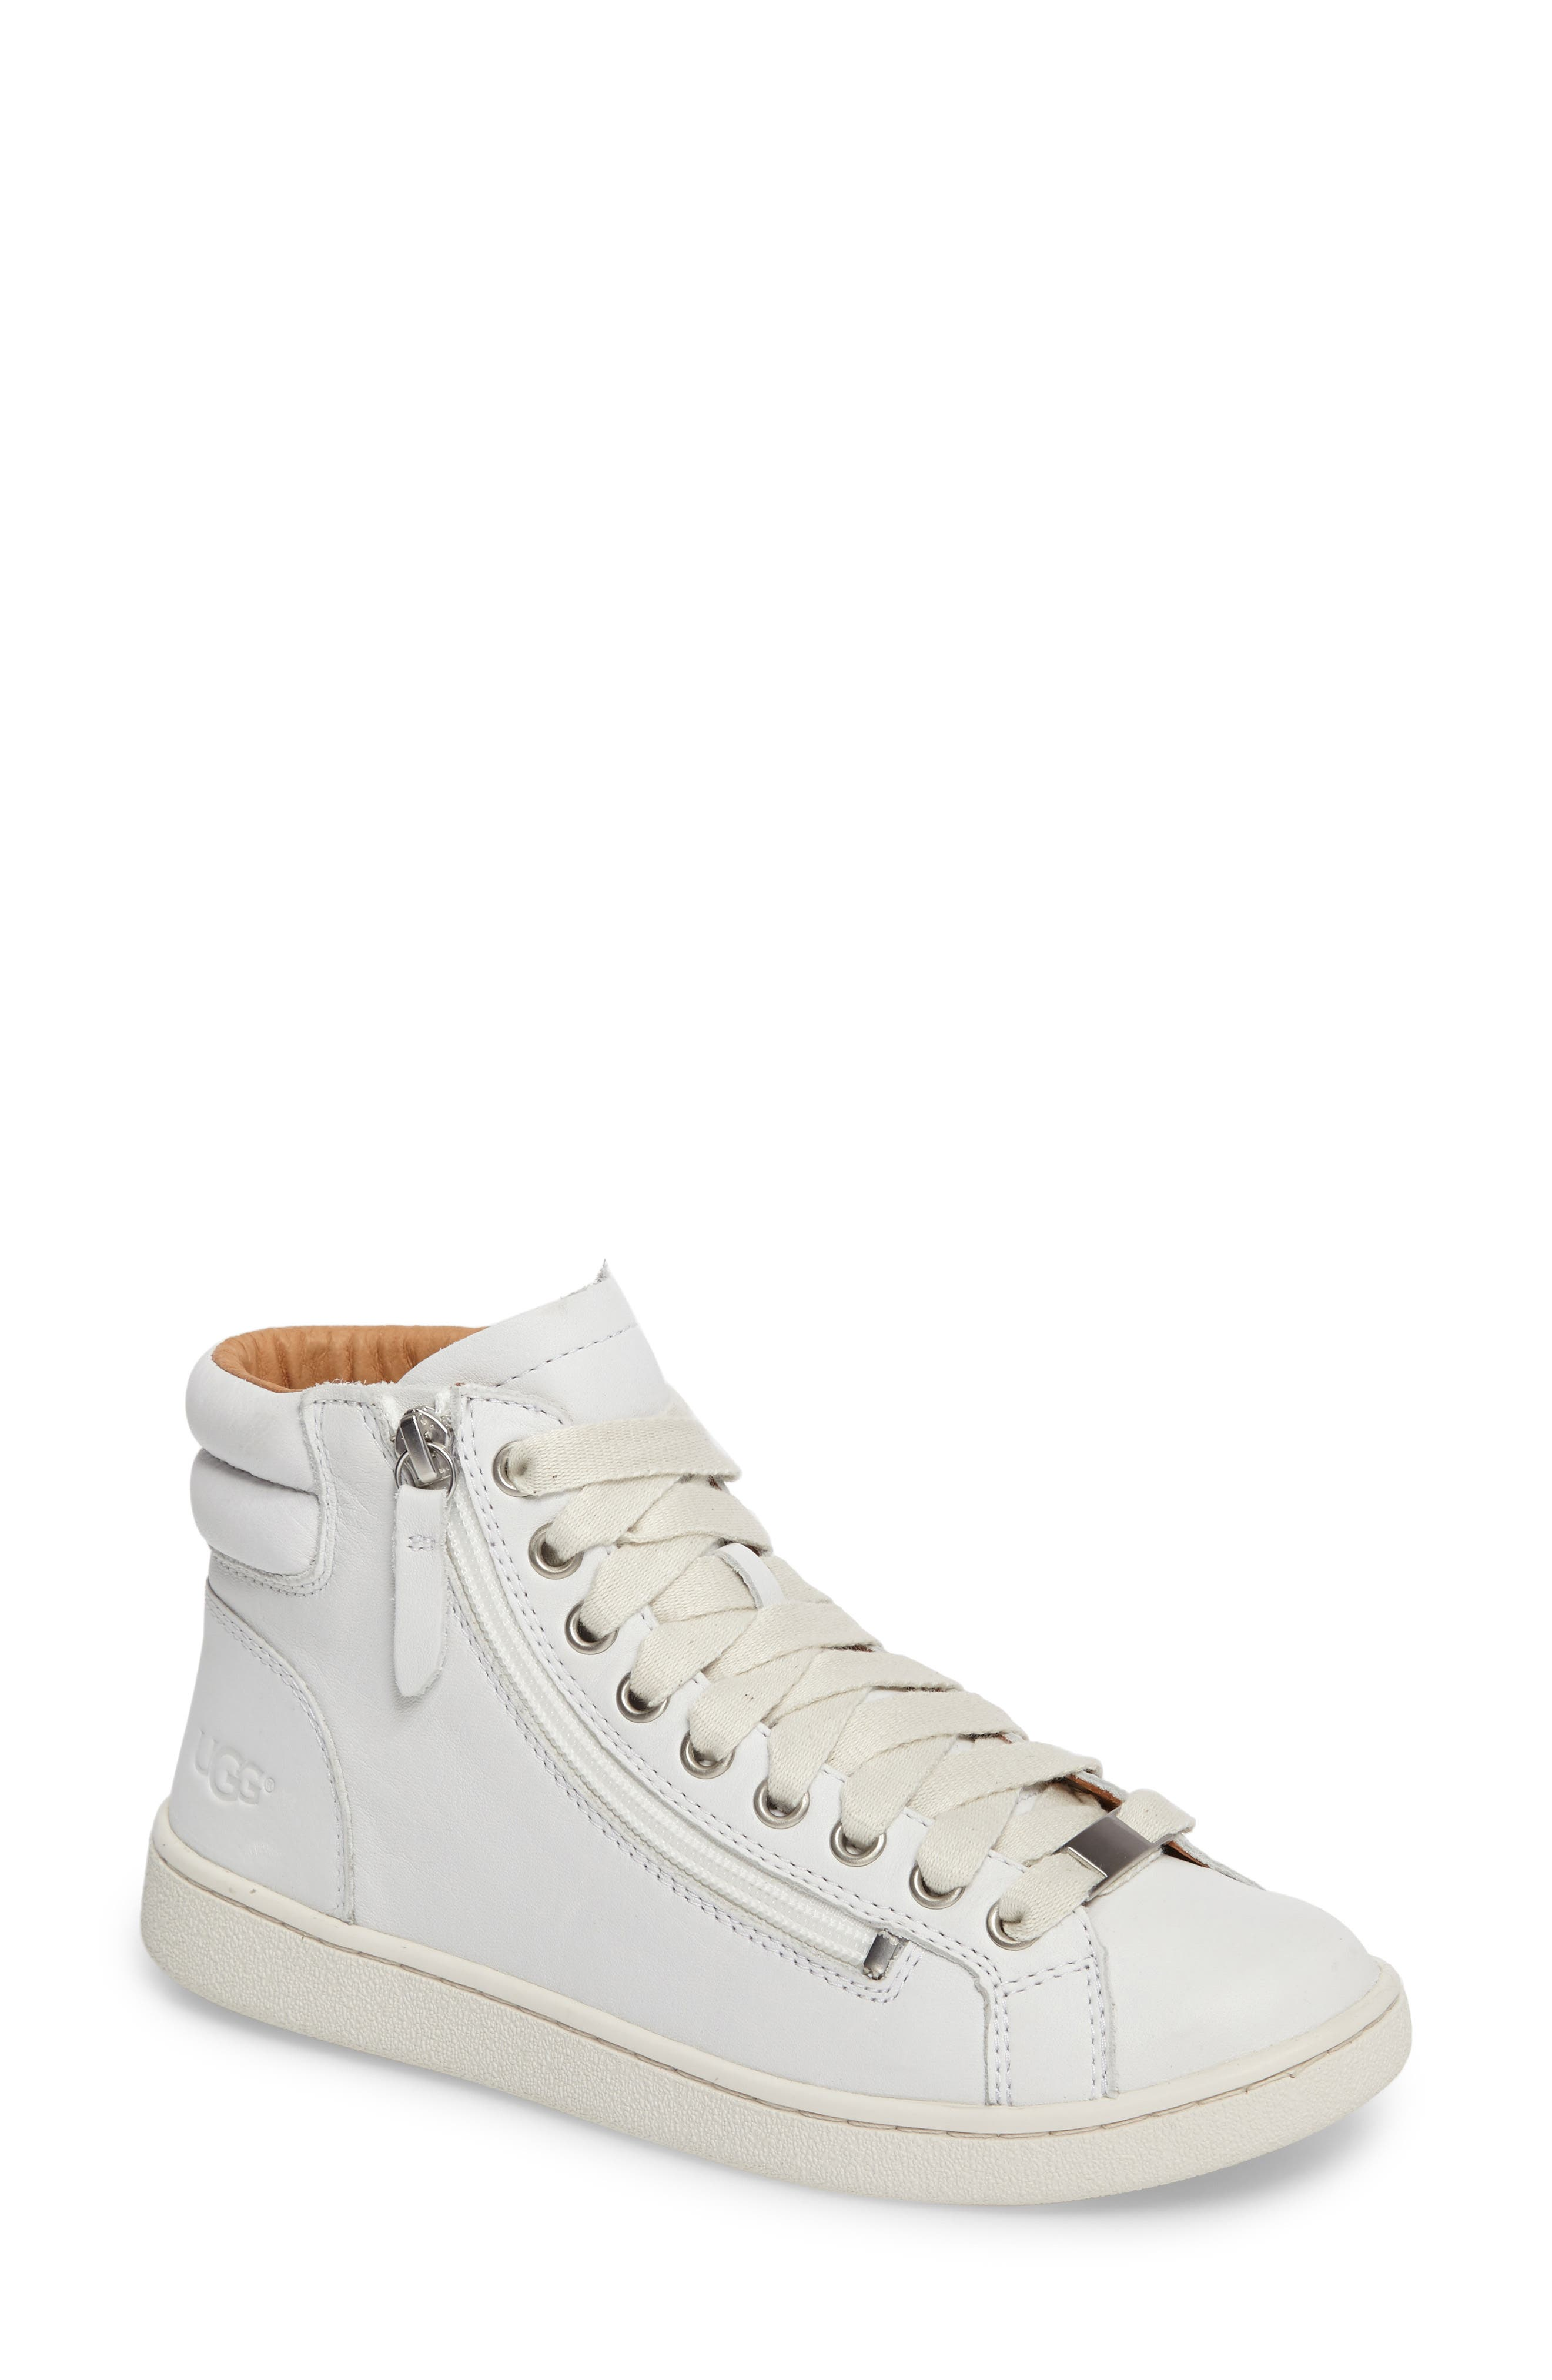 UGG Olive High Top Sneaker,                             Main thumbnail 1, color,                             White Leather